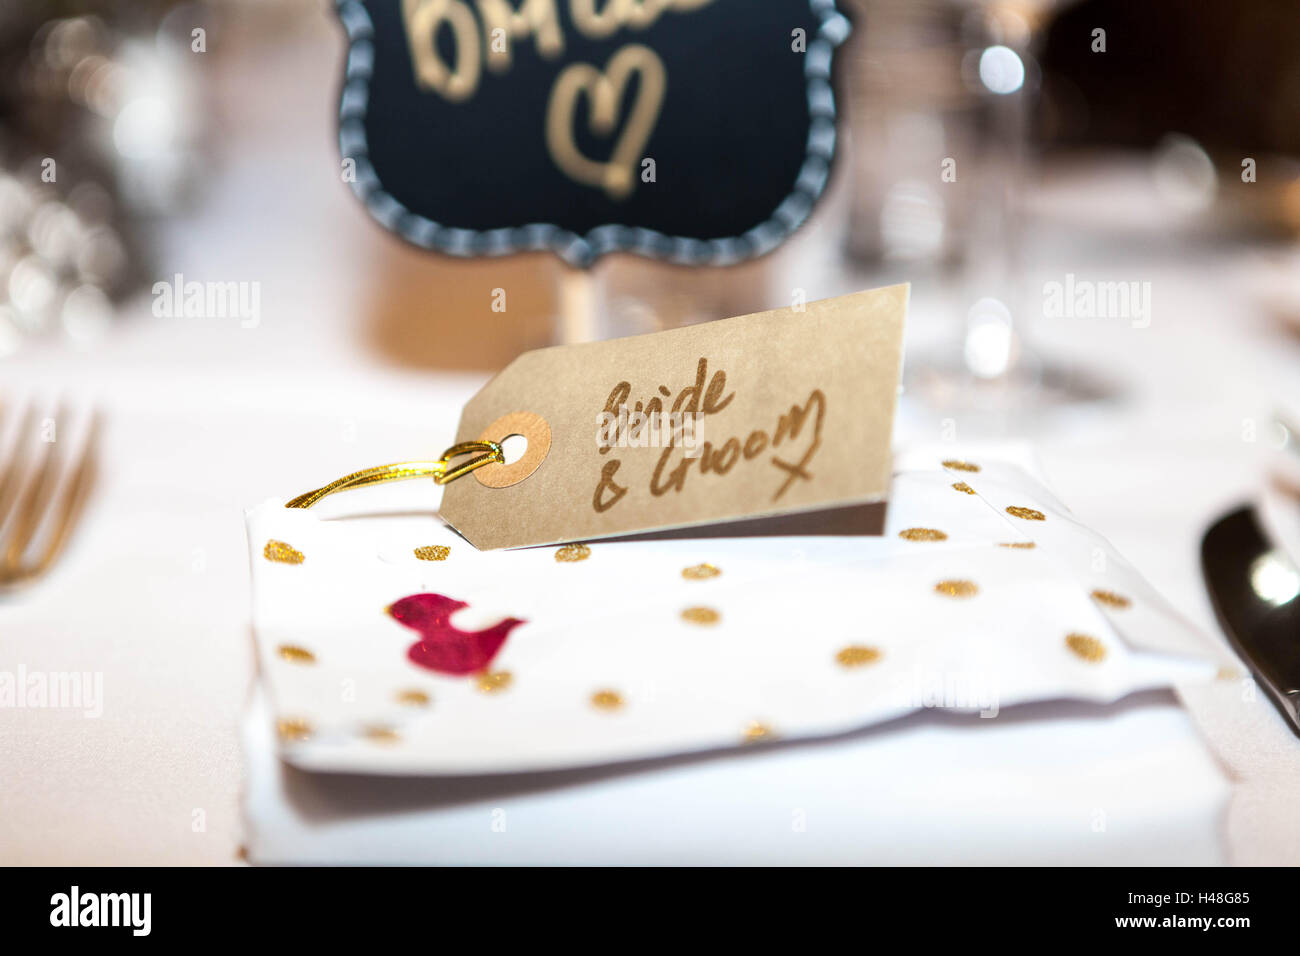 Place Setting For The Bride And Groom On A Wedding Table   Stock Image